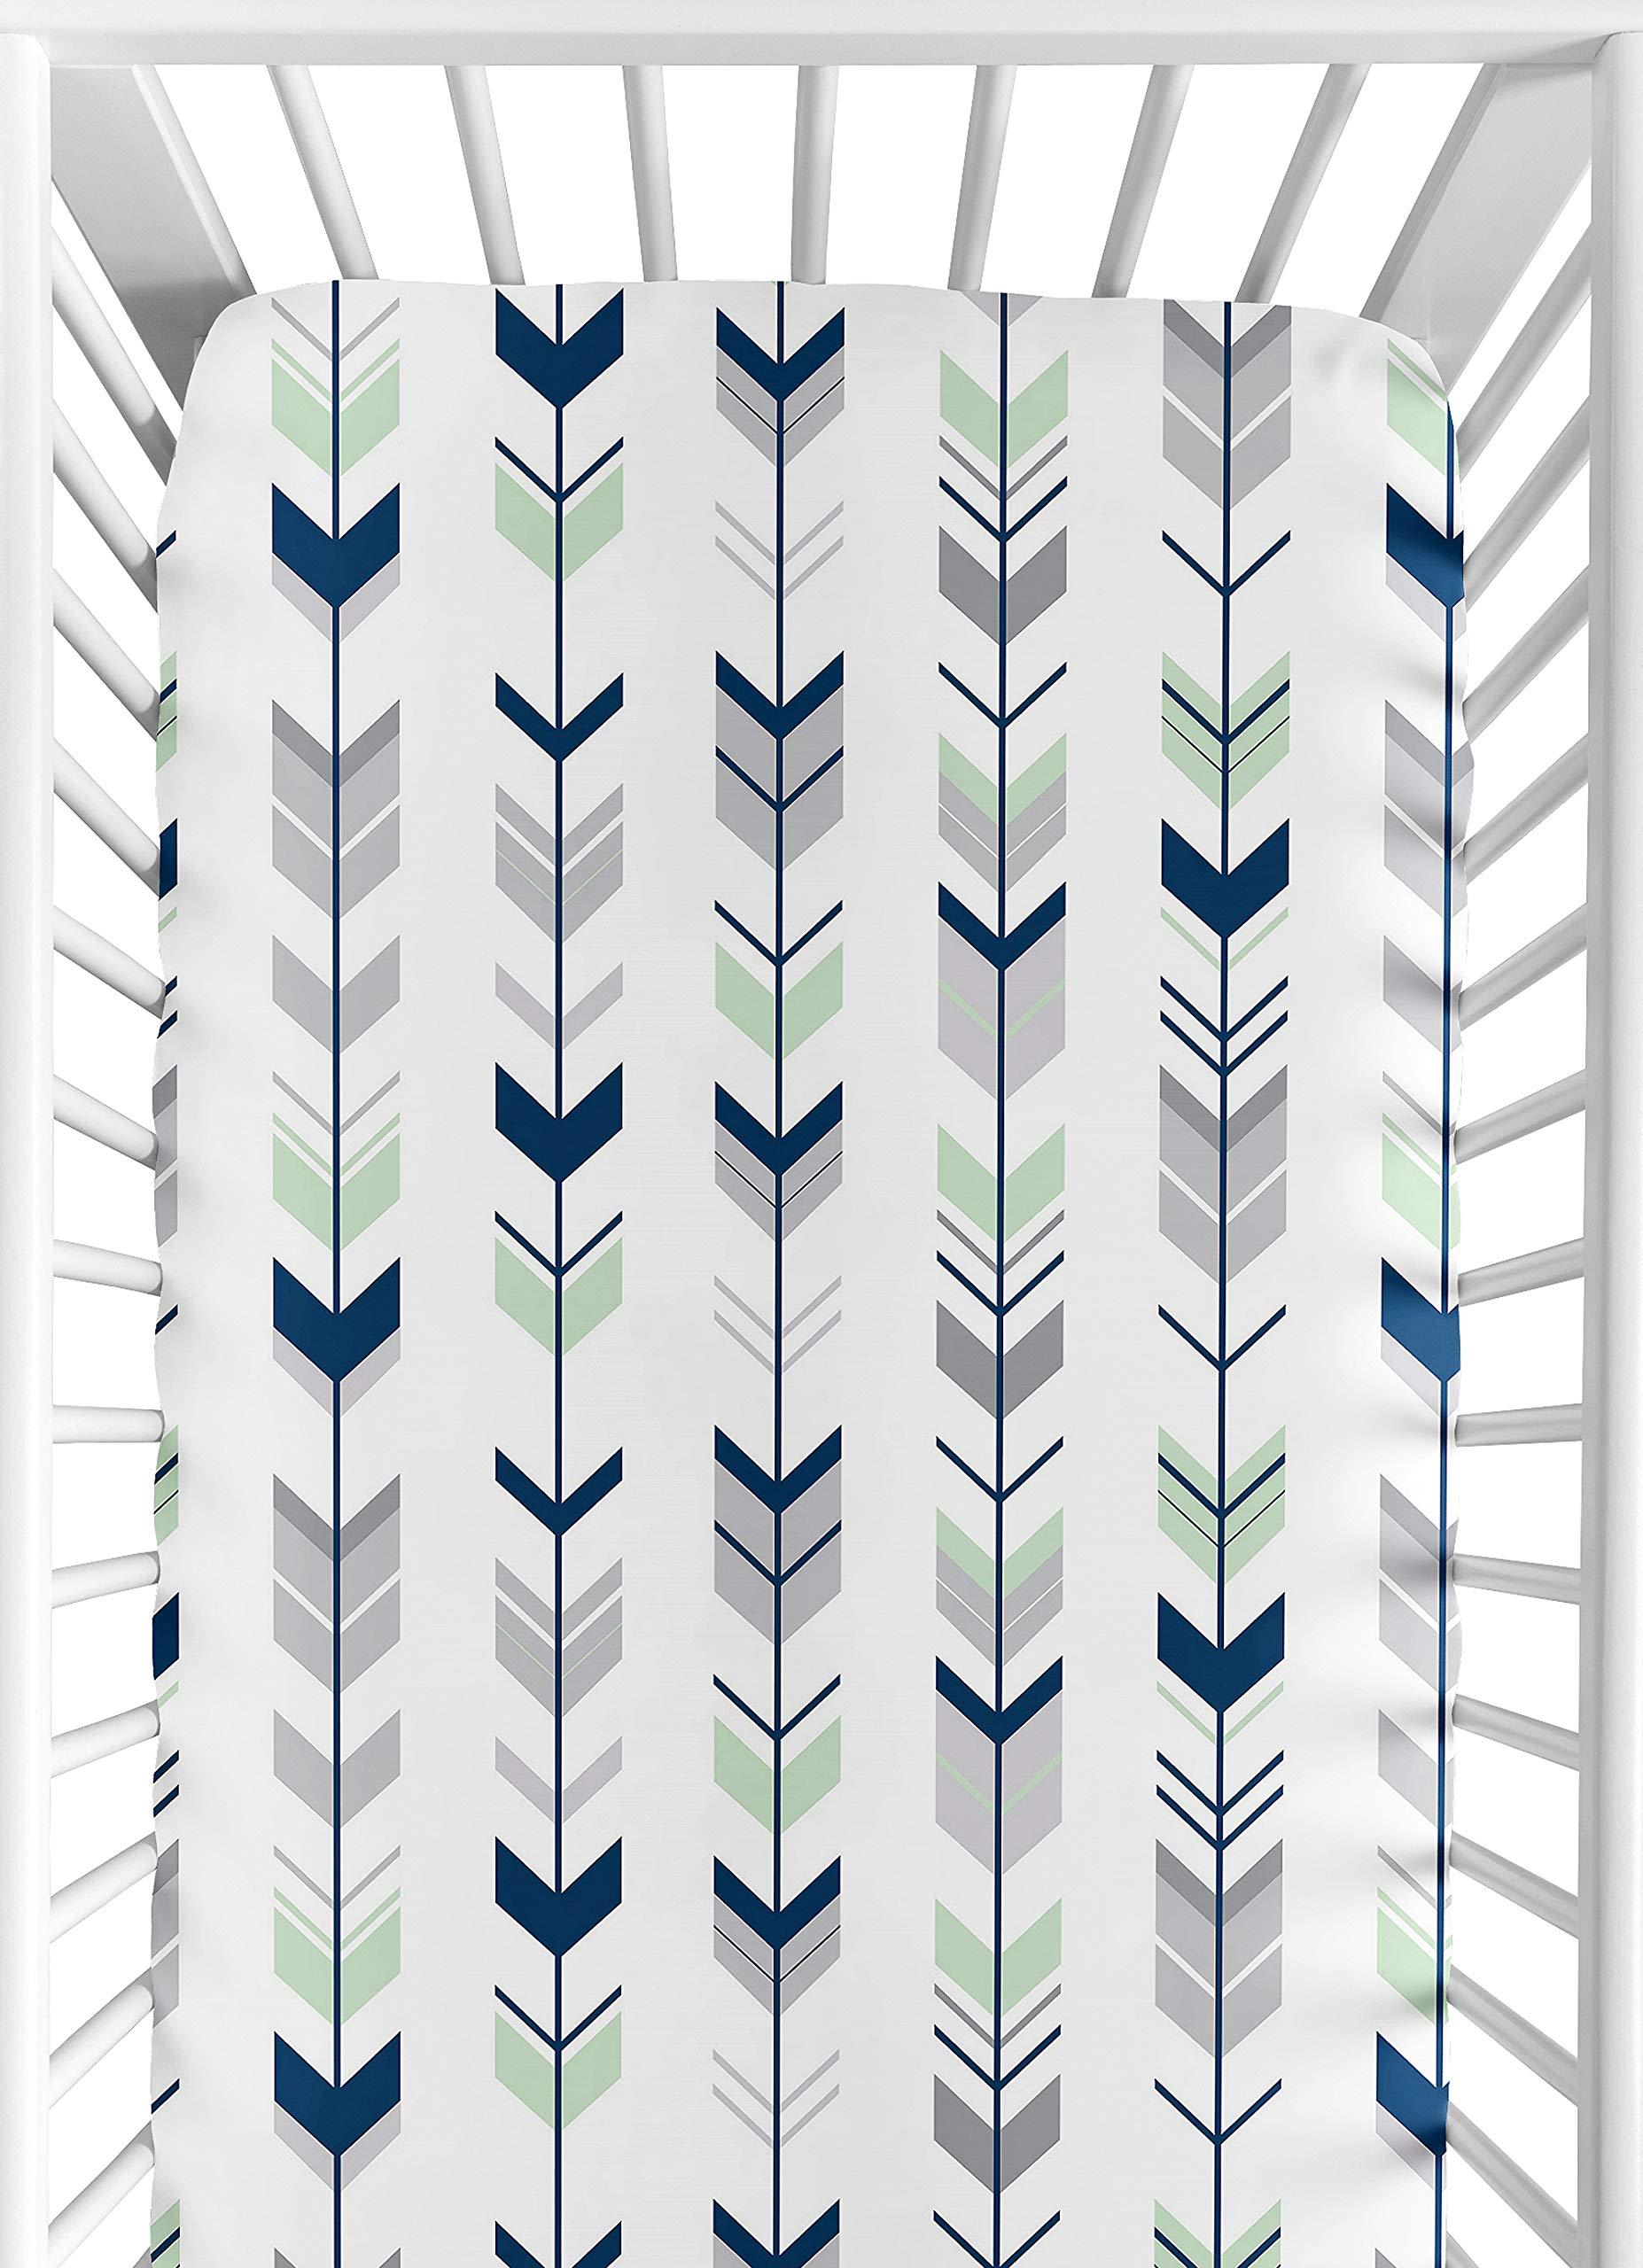 Sweet Jojo Designs Fitted Crib Sheet for Grey, Navy and Mint Woodland Arrow Baby/Toddler Bedding Set Collection - Arrow Print by Sweet Jojo Designs